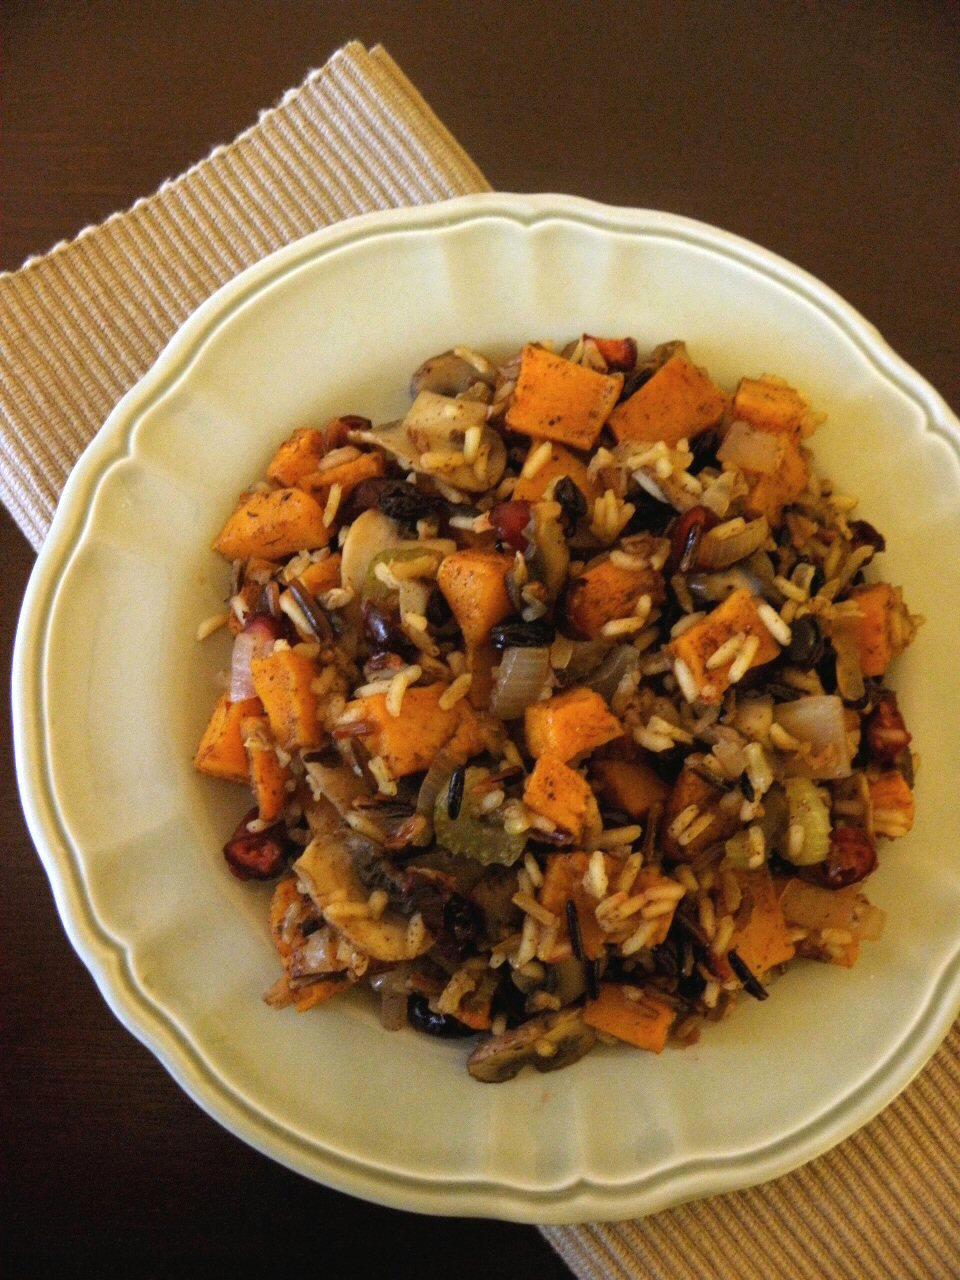 Cinnamon Freud: Wild Rice and Fruit Stuffing